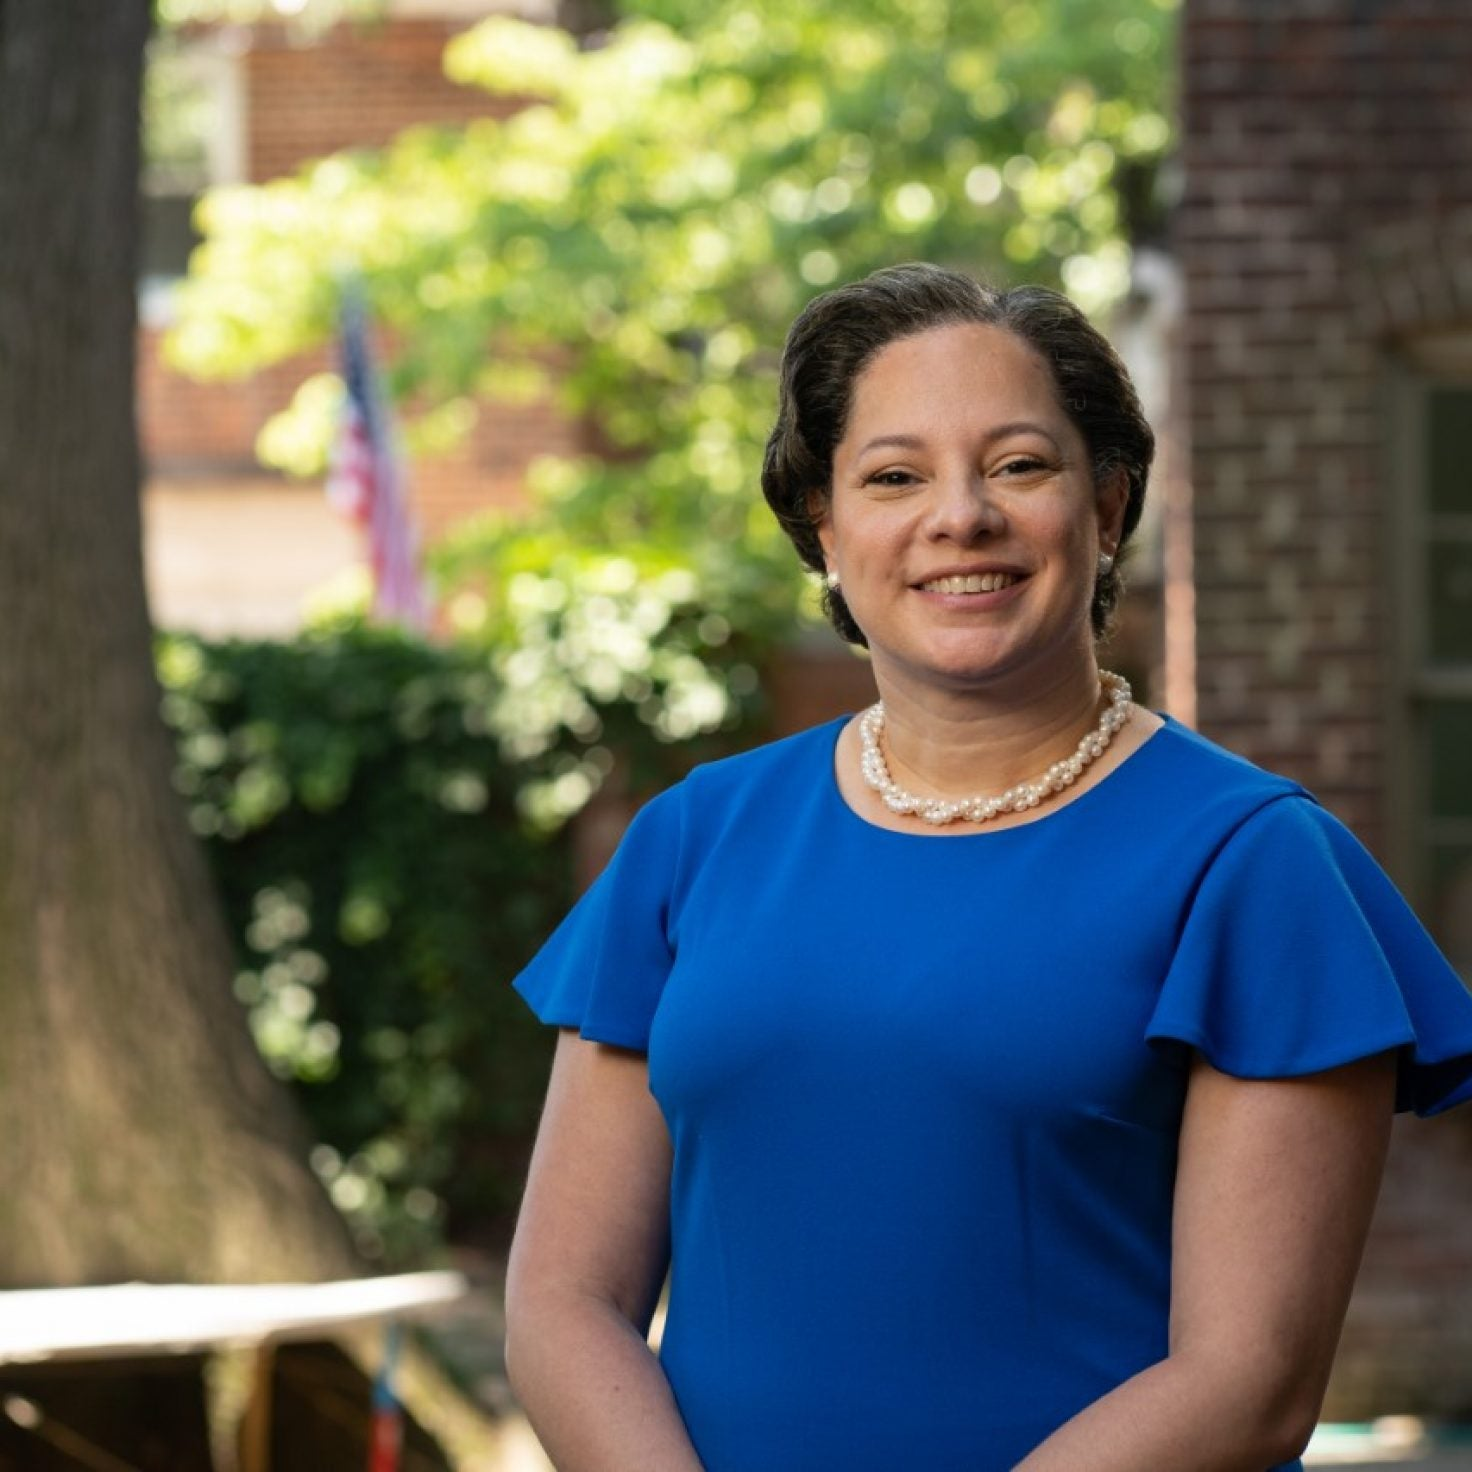 Jennifer McClellan Is Ready To Lead Virginia Into An Equitable Future